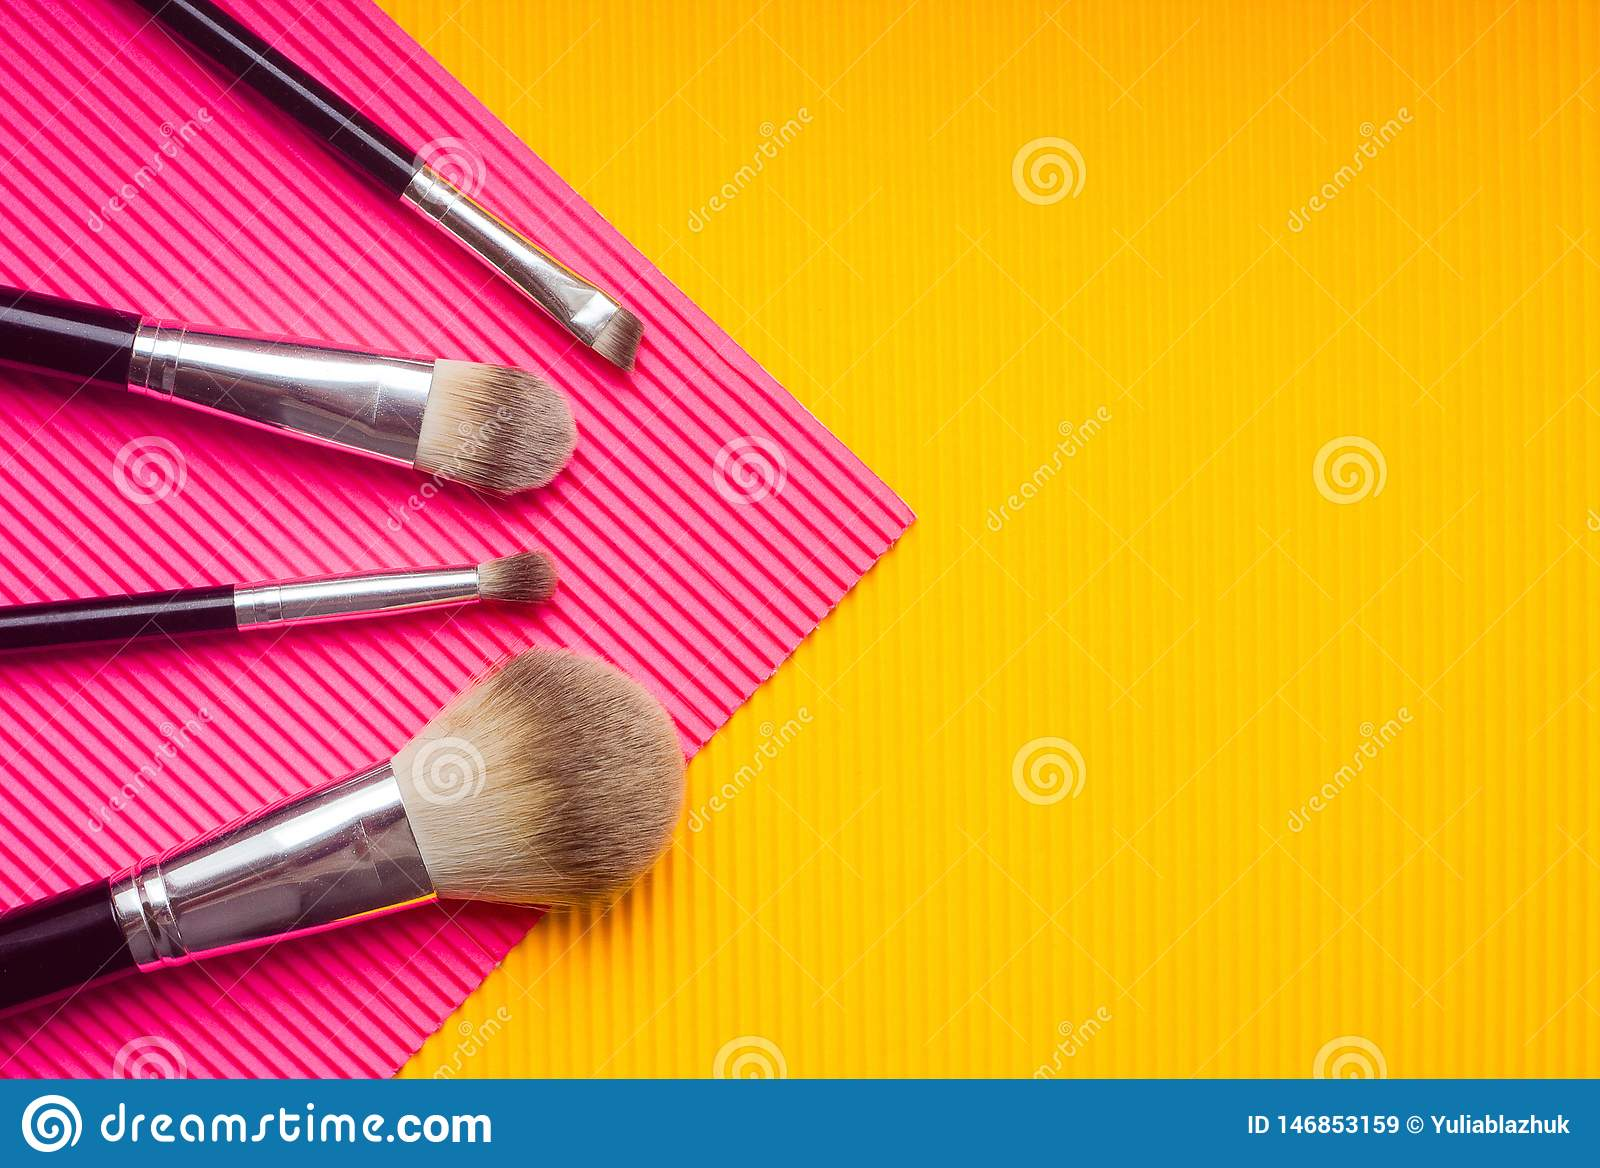 Set of makeup brushes against multicolor background. Top view point, flat lay